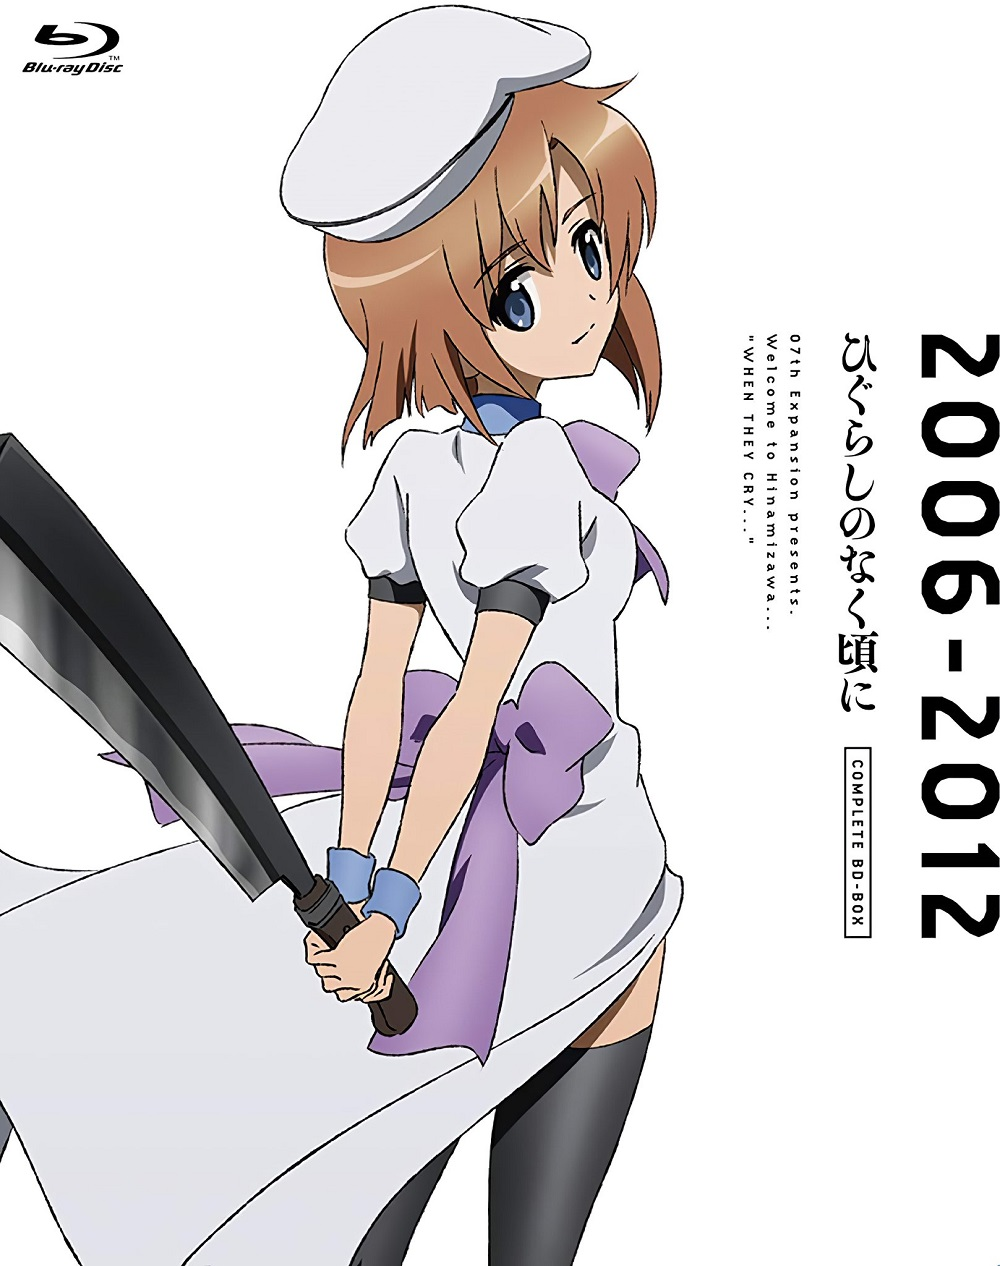 Higurashi: Blu-ray BOX